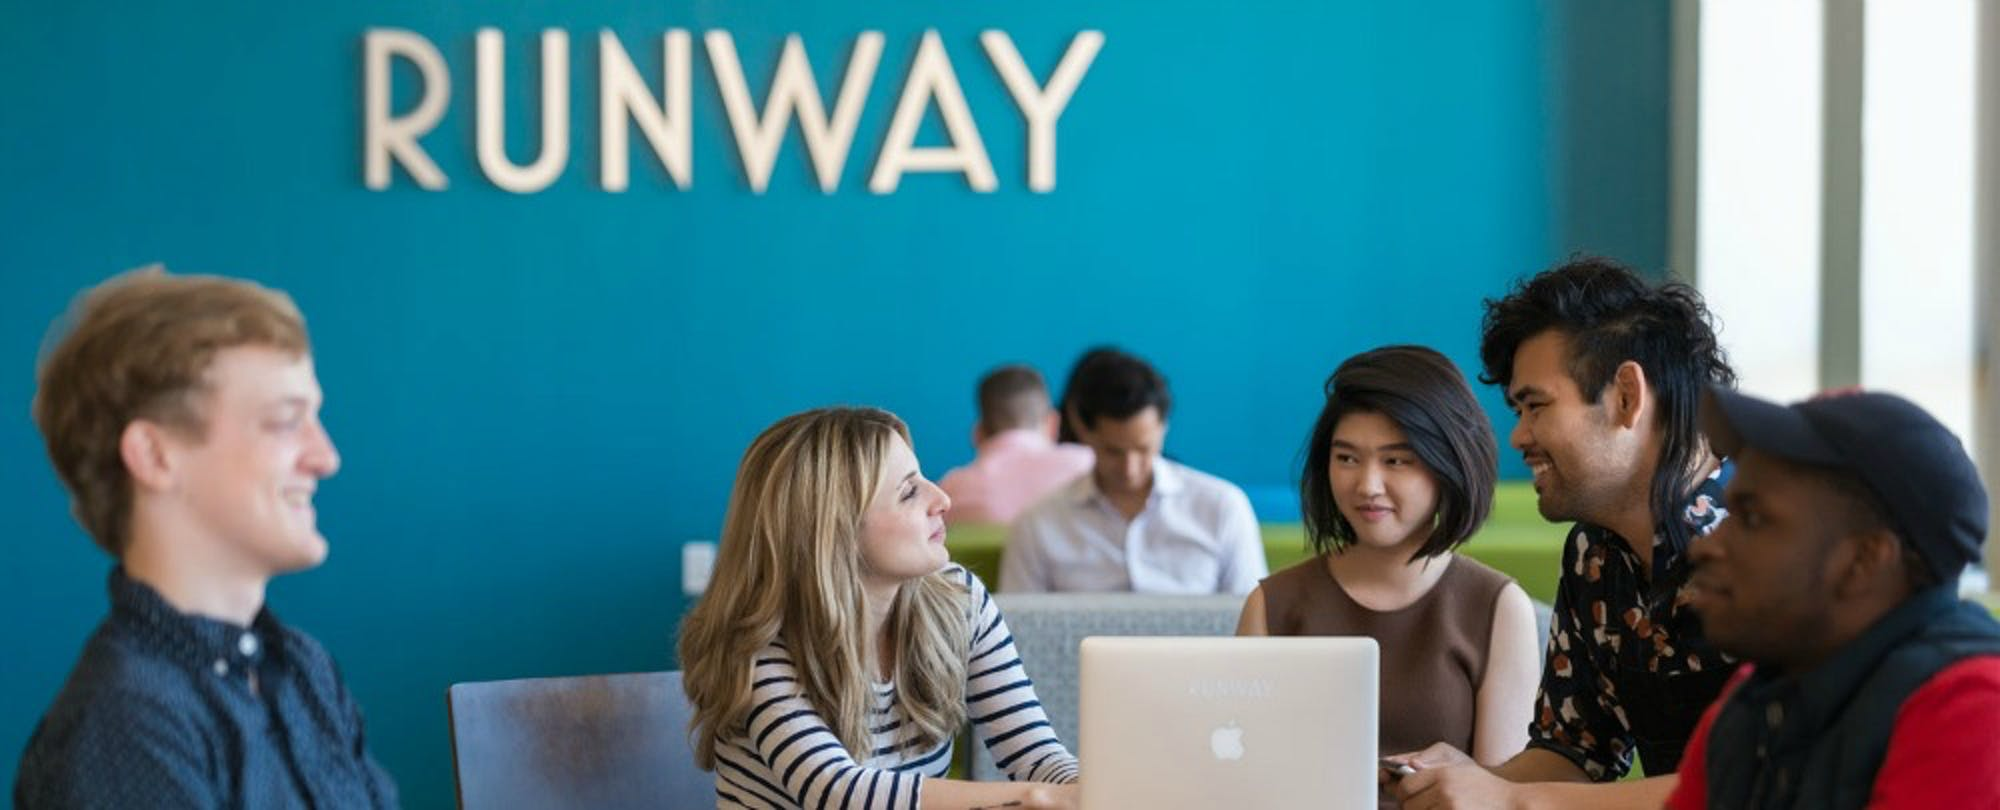 Michelson Runway Announces 5 Higher-Ed Startups in Inaugural Cohort